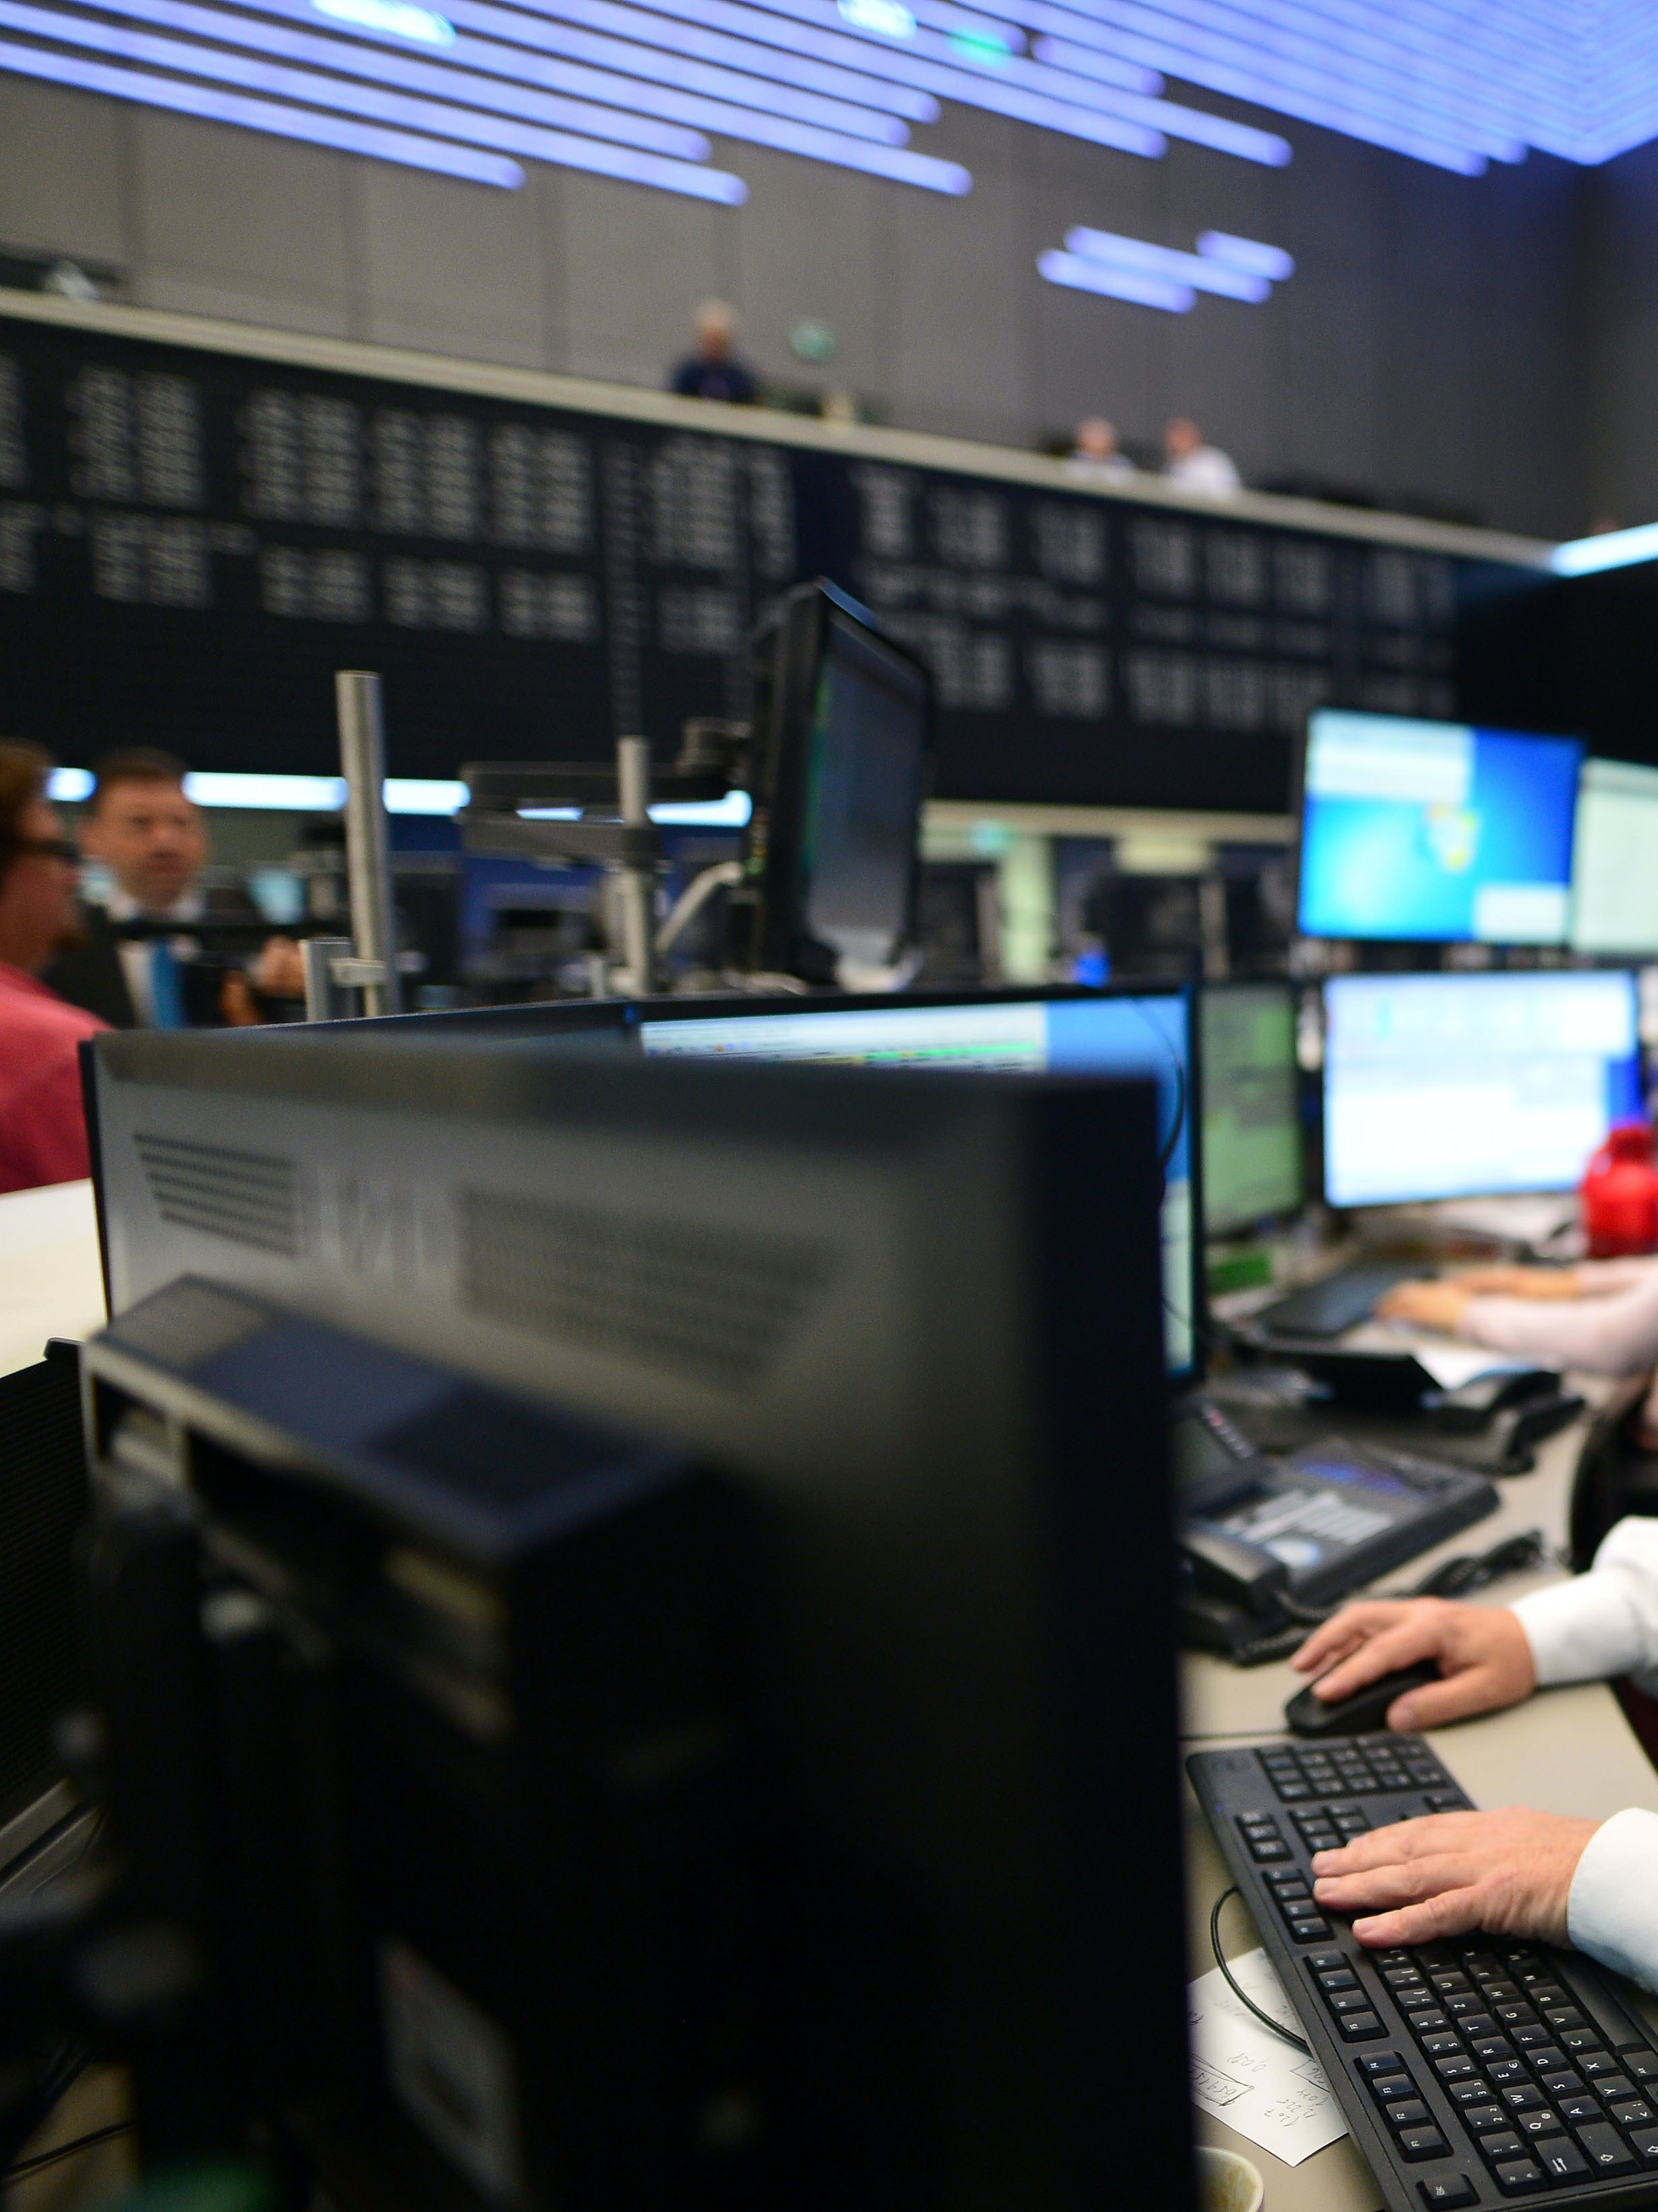 FRANKFURT AM MAIN, GERMANY - JUNE 24: A trader looks to his computer screens whilst working at the Frankfurt Stock exchange the day after a majority of the British public voted for leaving the European Union on June 24, 2016 in Frankfurt am Main, Germany. Many prominent corporate CEOs and leading economists have warned that a Brexit would have strongly negative consequences for the British economy and repercussions across Europe as well. (Photo by Thomas Lohnes/Getty Images)